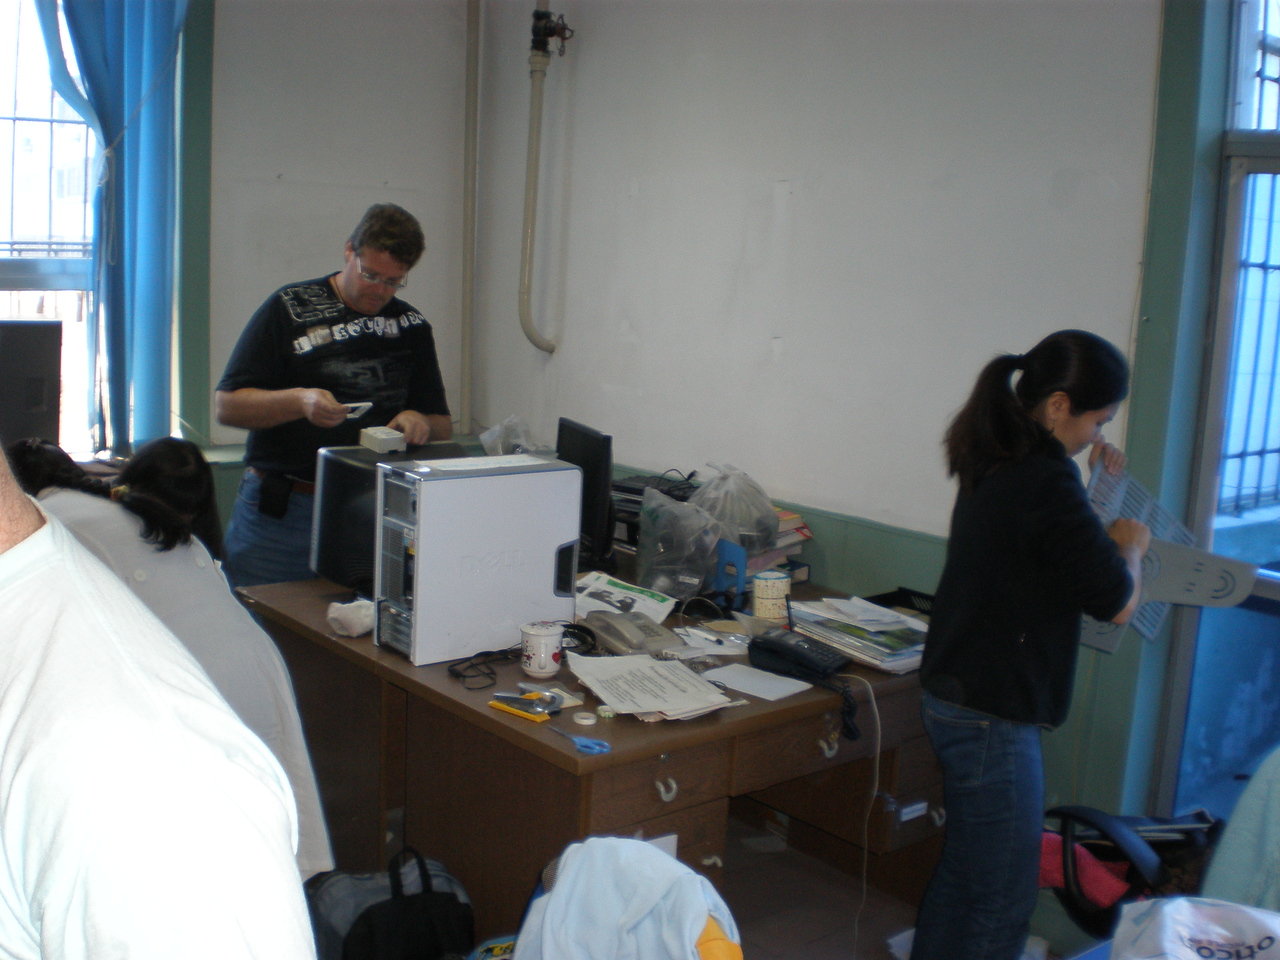 20081015 (photo taken by Richard G) packing things up at the ELA office (Beiguan Hospital)